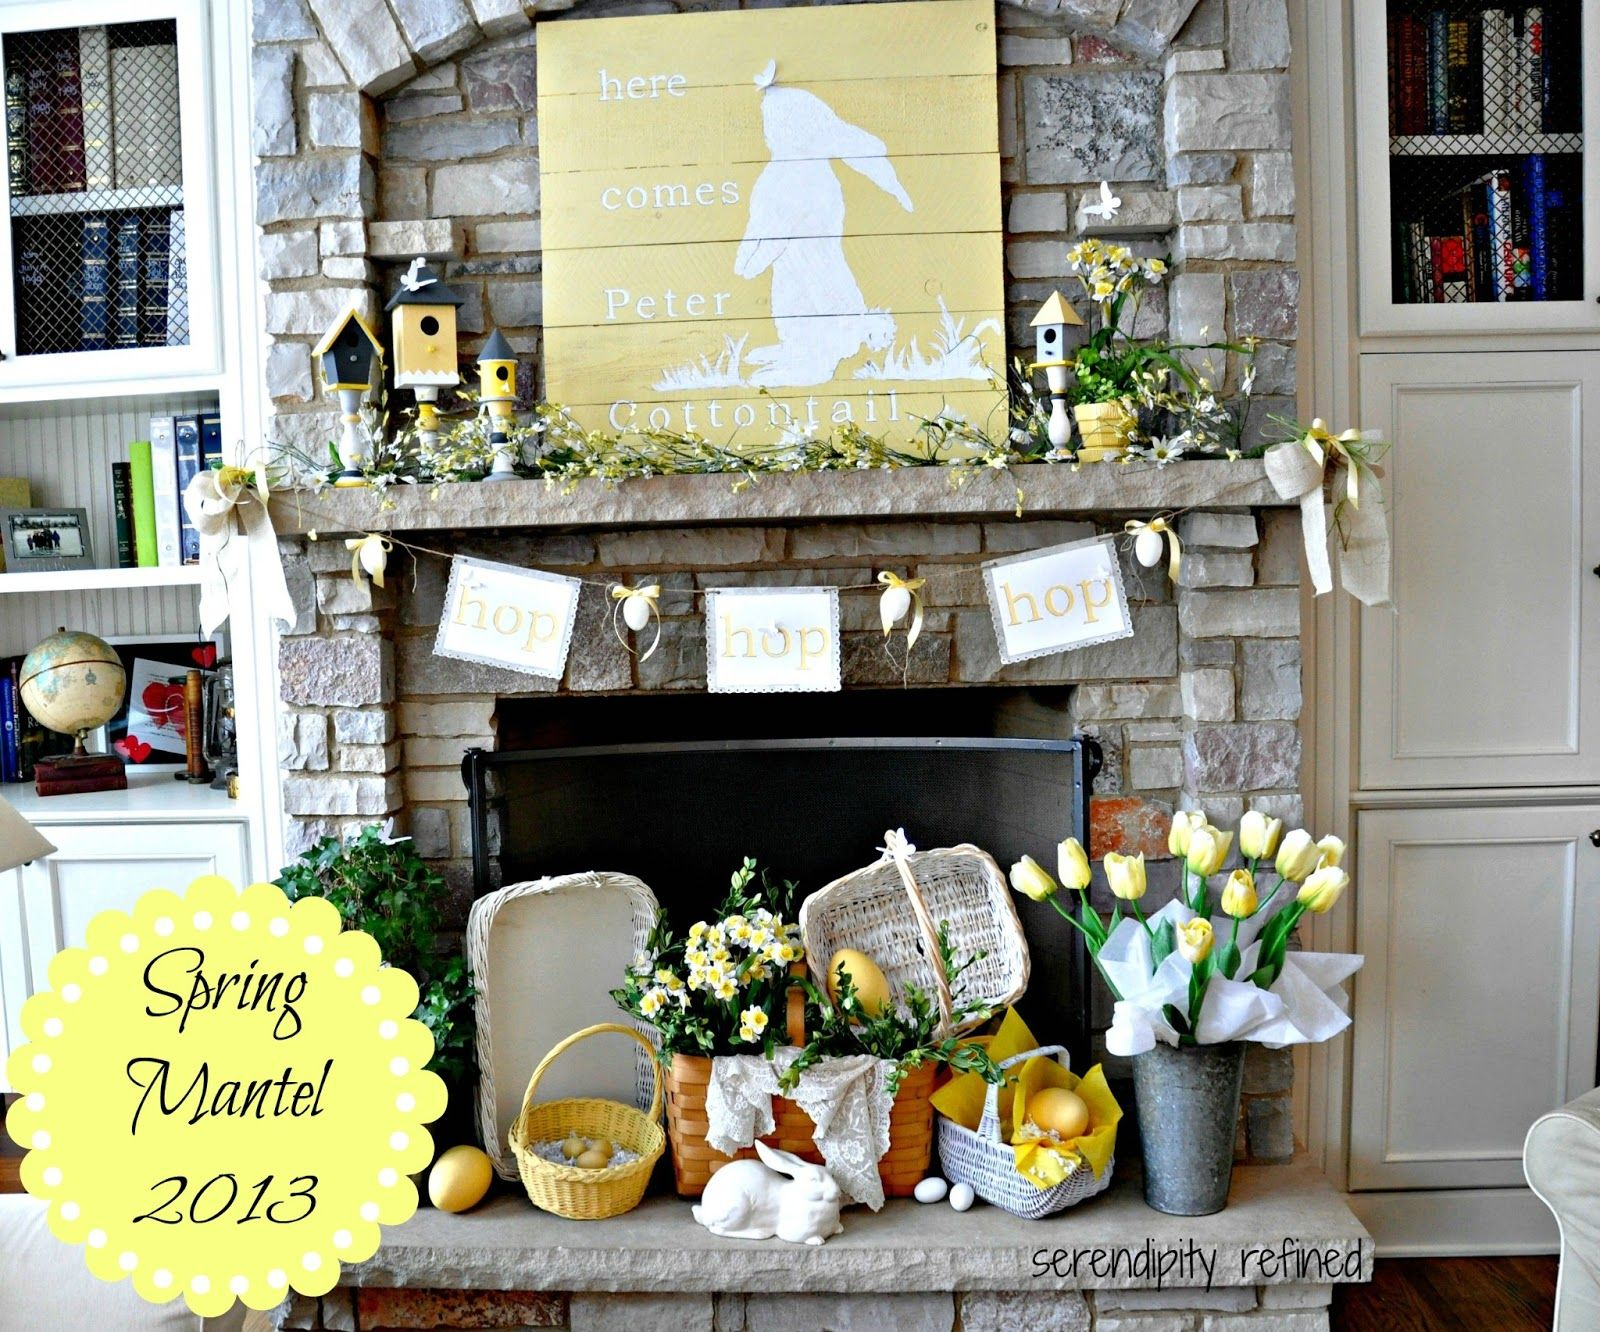 Here Comes Peter Cottontail Mantels Easter And